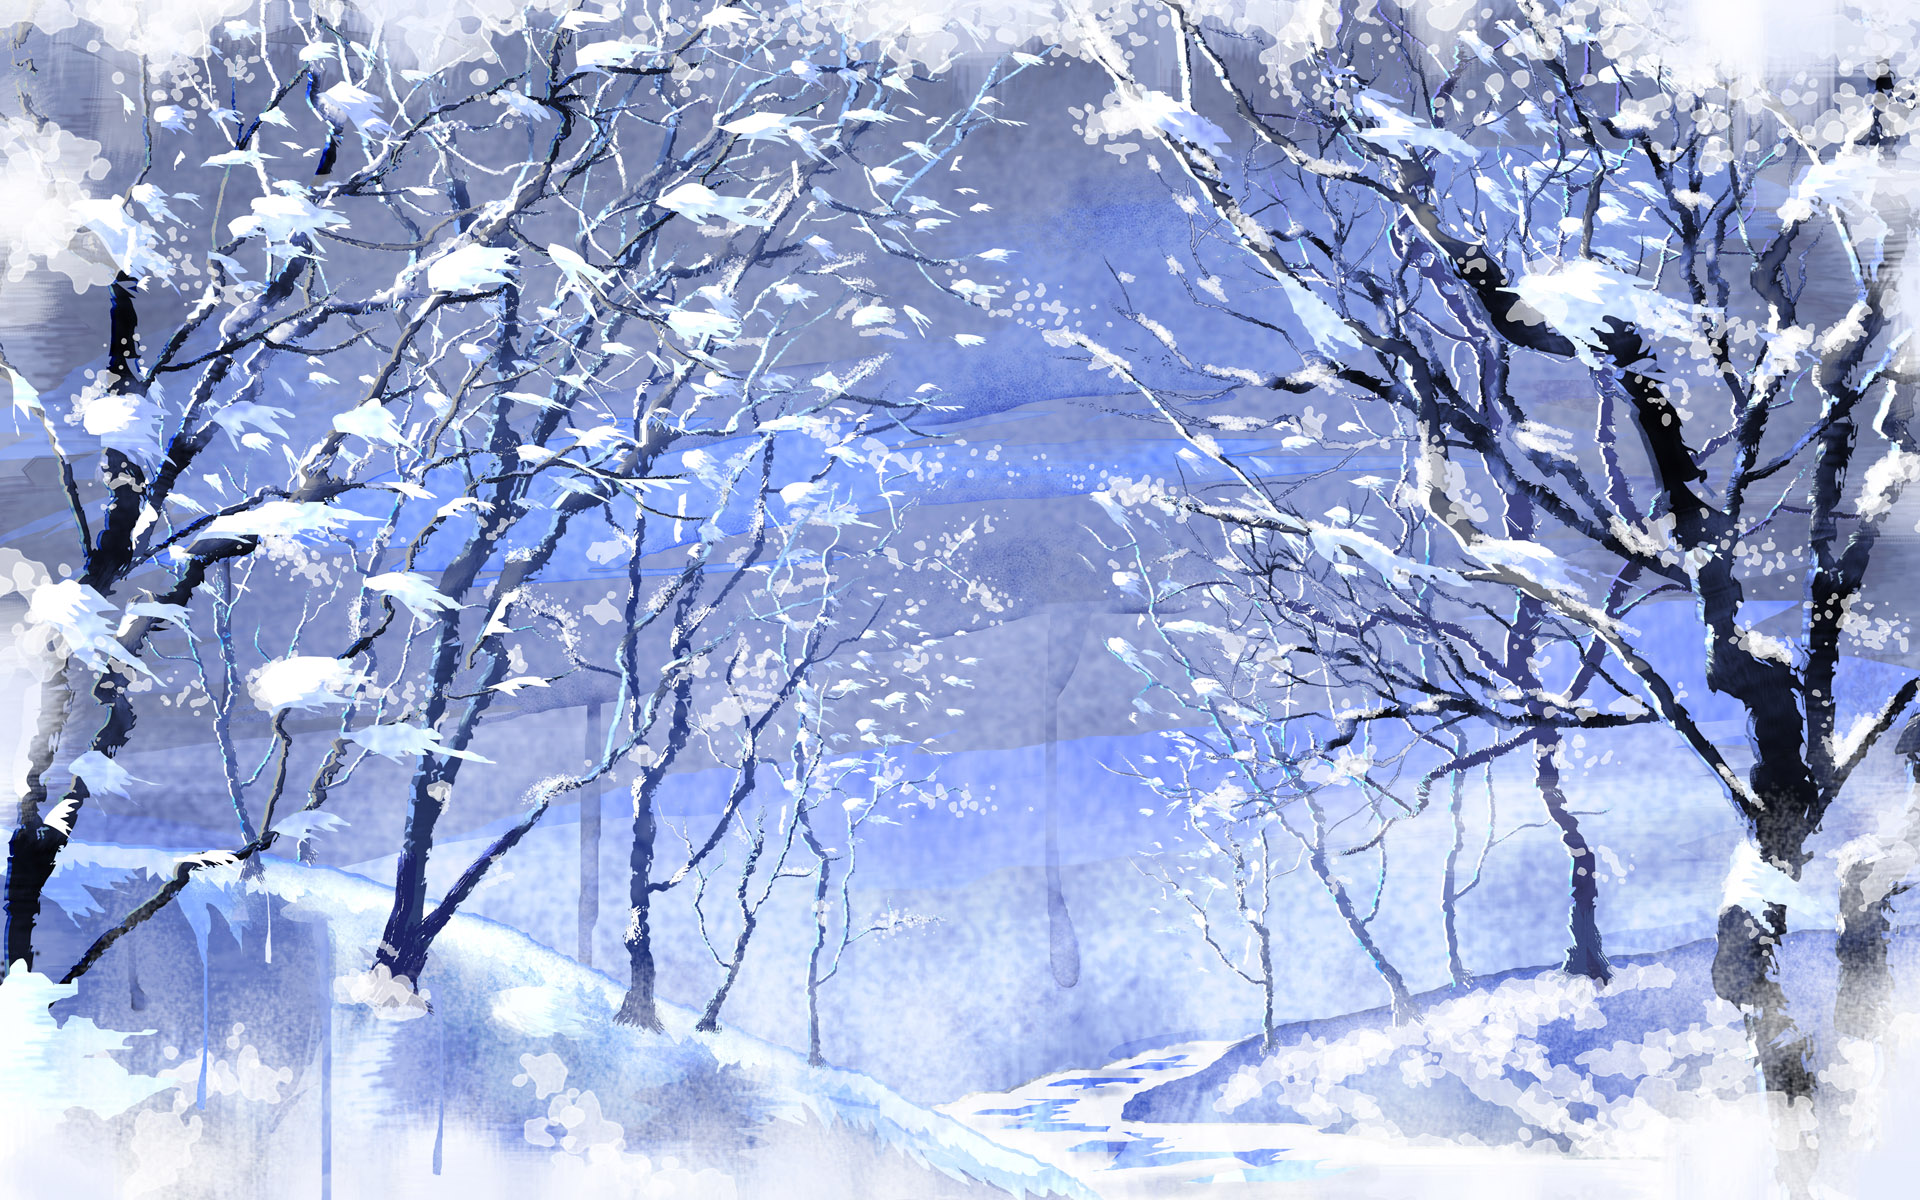 winter scene free desktop wallpaper s wallpaper s orgwallpapers diq 1920x1200